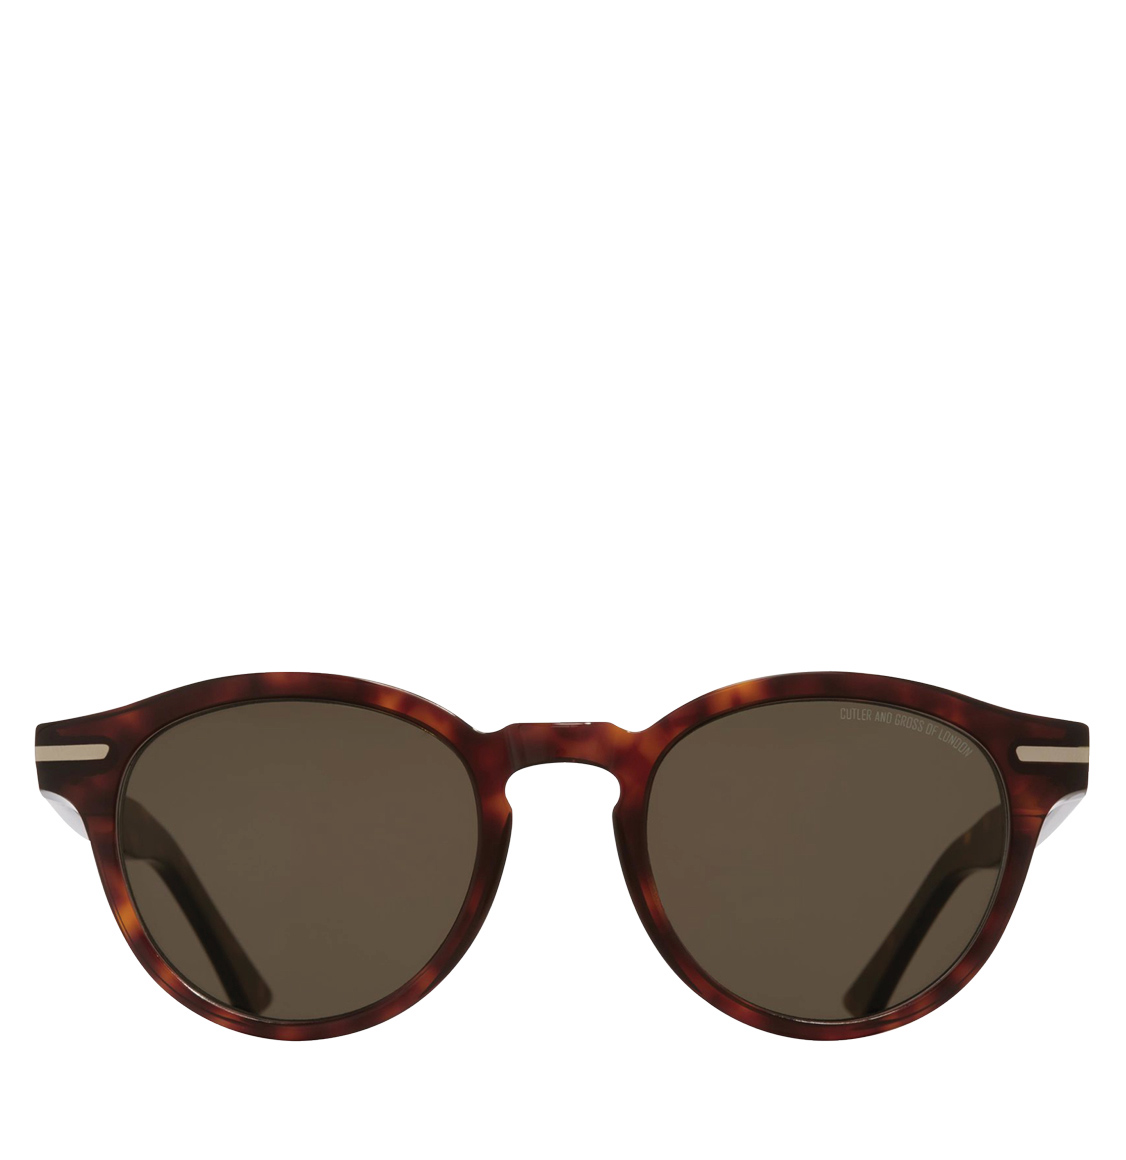 Cutler and Gross 1338-02 Round-Frame Tortoiseshell Acetate 51 Γυαλιά Ηλίου